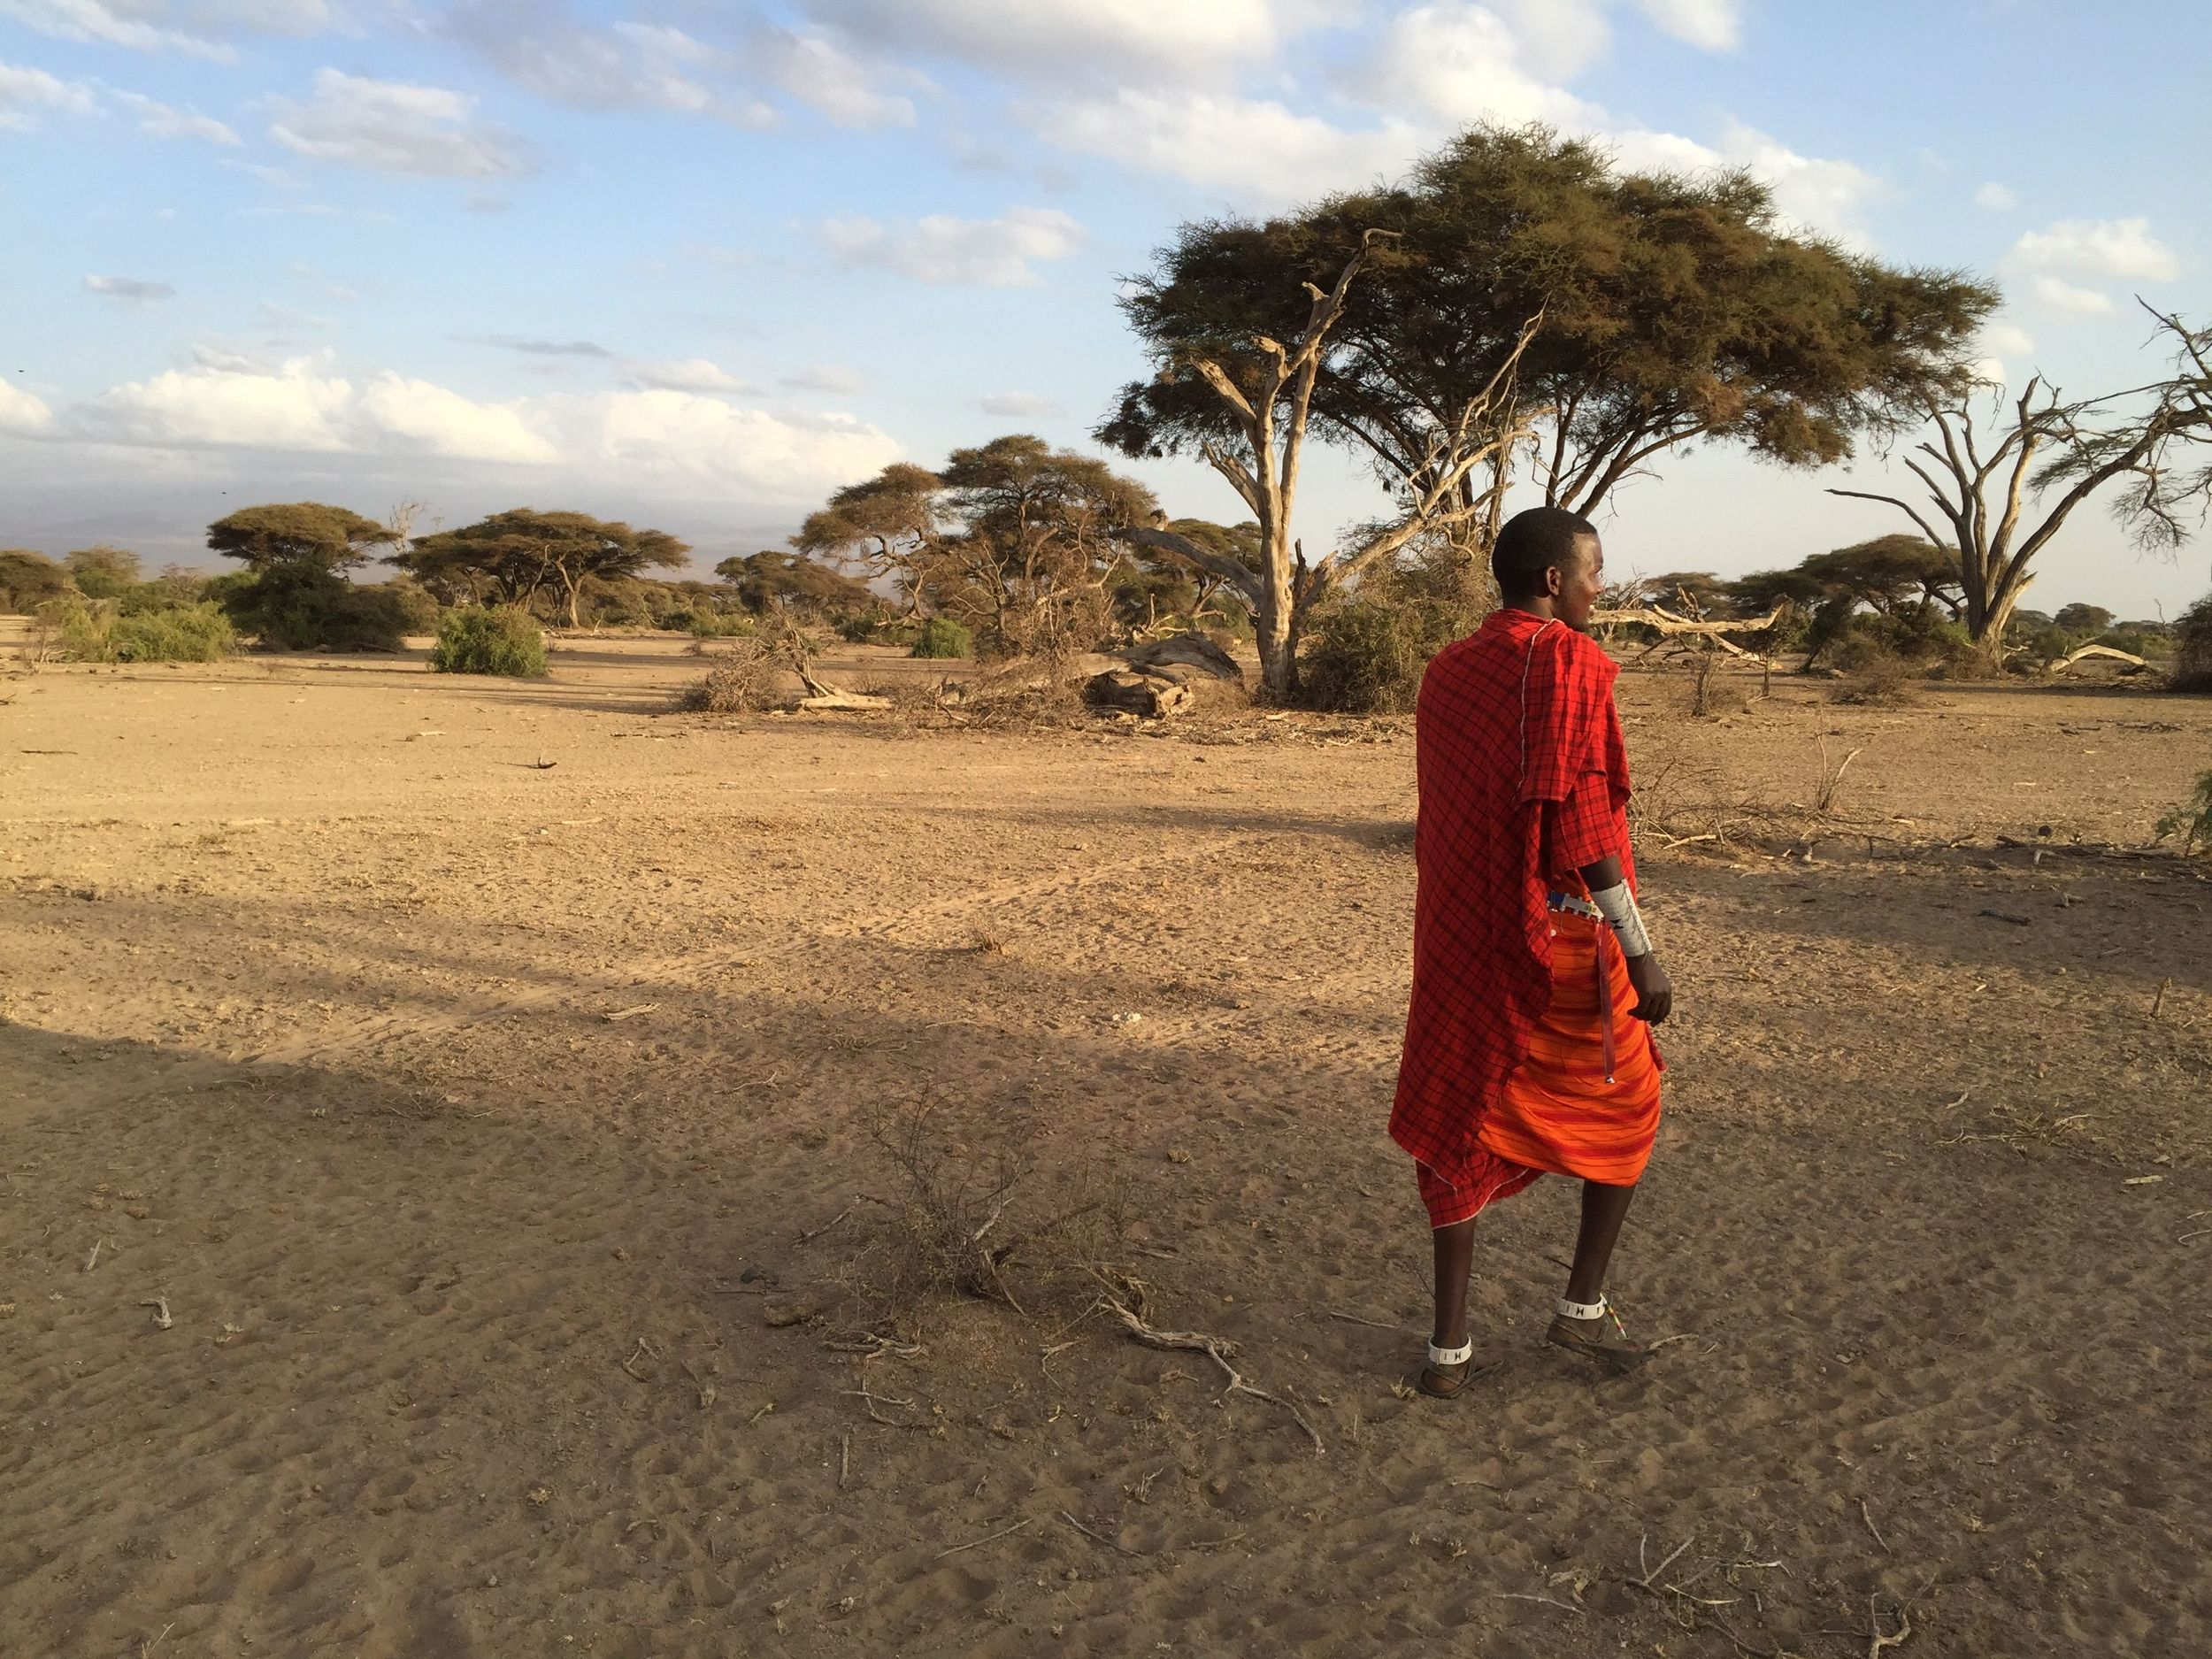 William. a Masai tribesman, leads our group on a walking safari in game reserve in the foothills of Kilimanjaro. The nomadic Masai tribes live in the game reserves, where they herd cattle and goats. The Masai don't hunt wild animals, but they live among them.